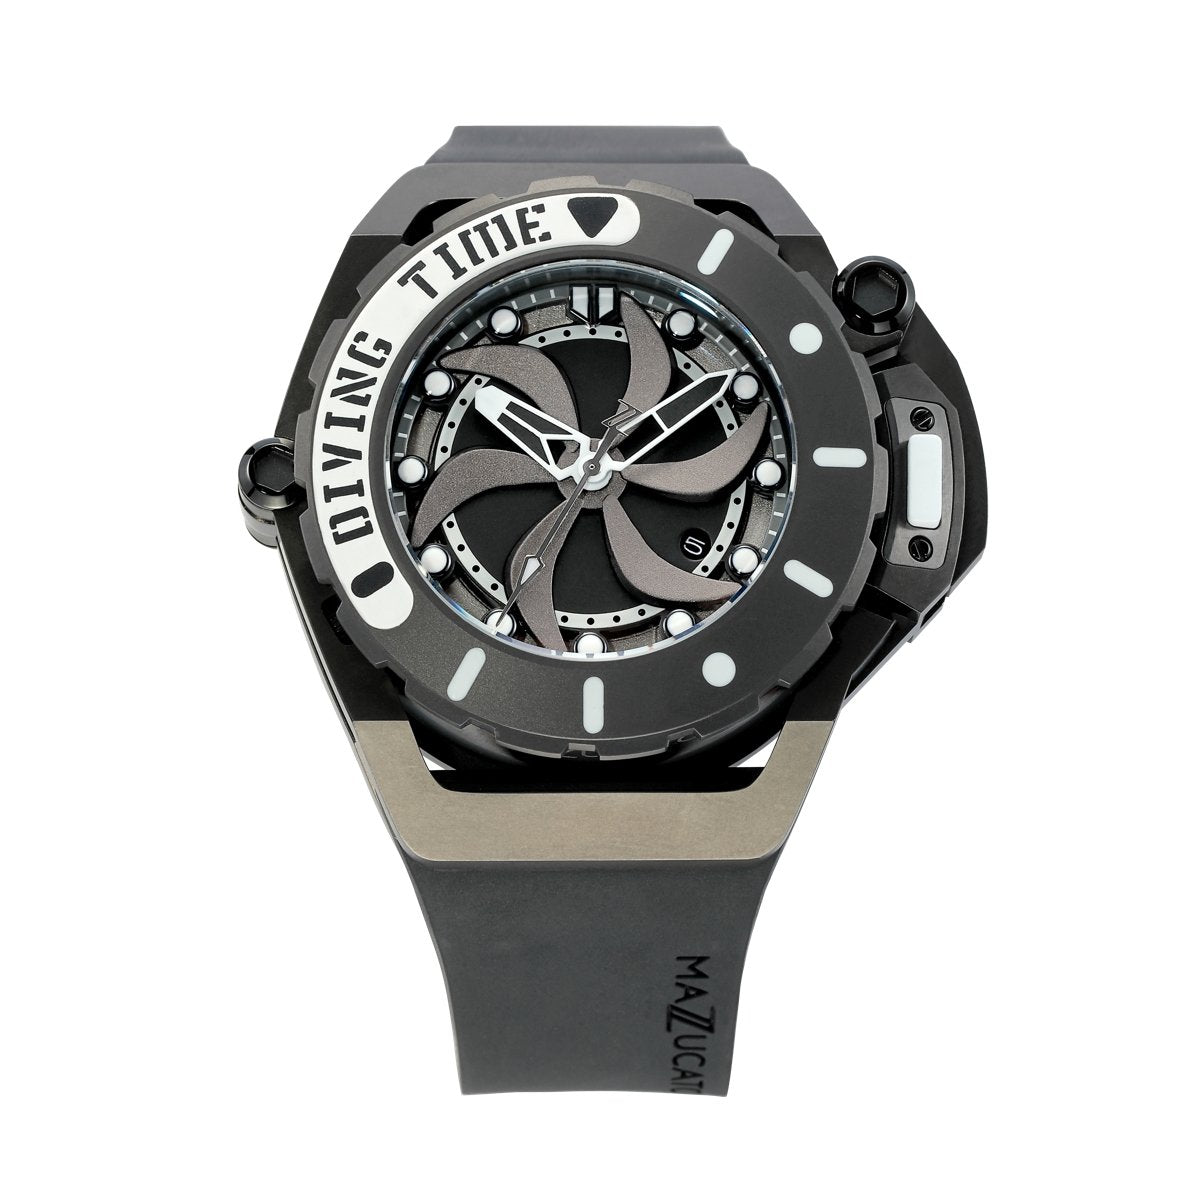 Mazzucato RIM Scuba Black - Watches & Crystals